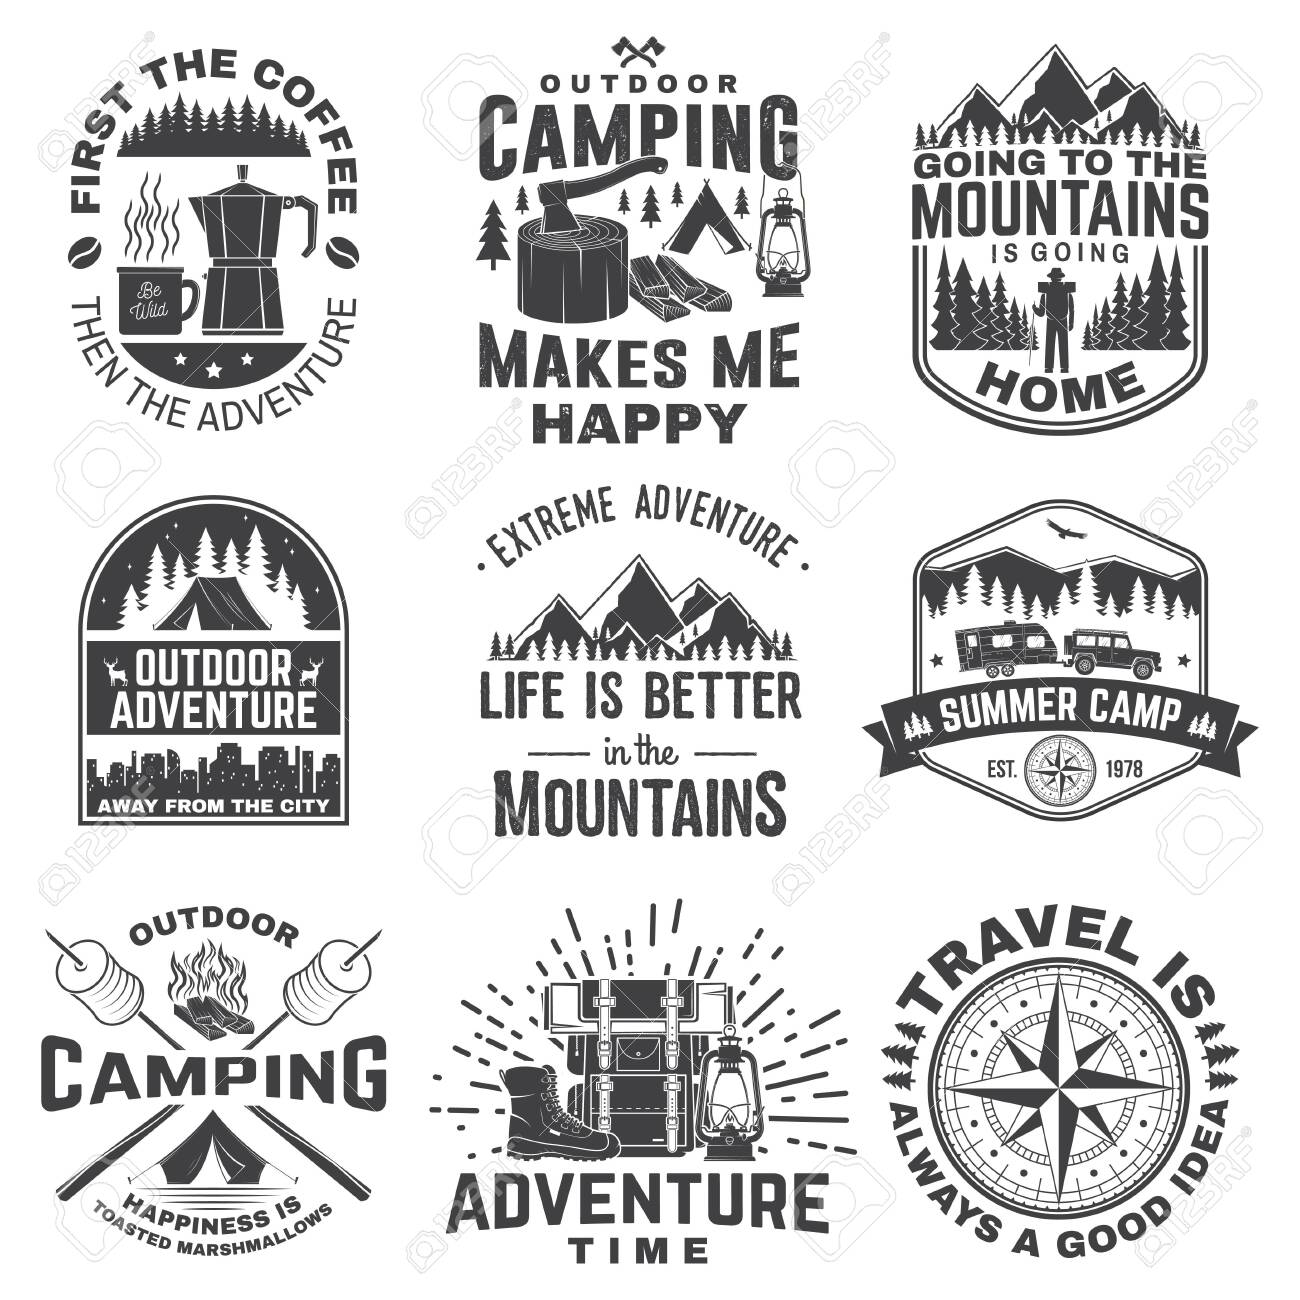 Set of outdoor adventure quotes symbol. Vector illustration. Concept for shirt print, stamp, tee. Vintage design with marshmallow, axe, mountains, deer, tent, compass and forest silhouette - 143467488